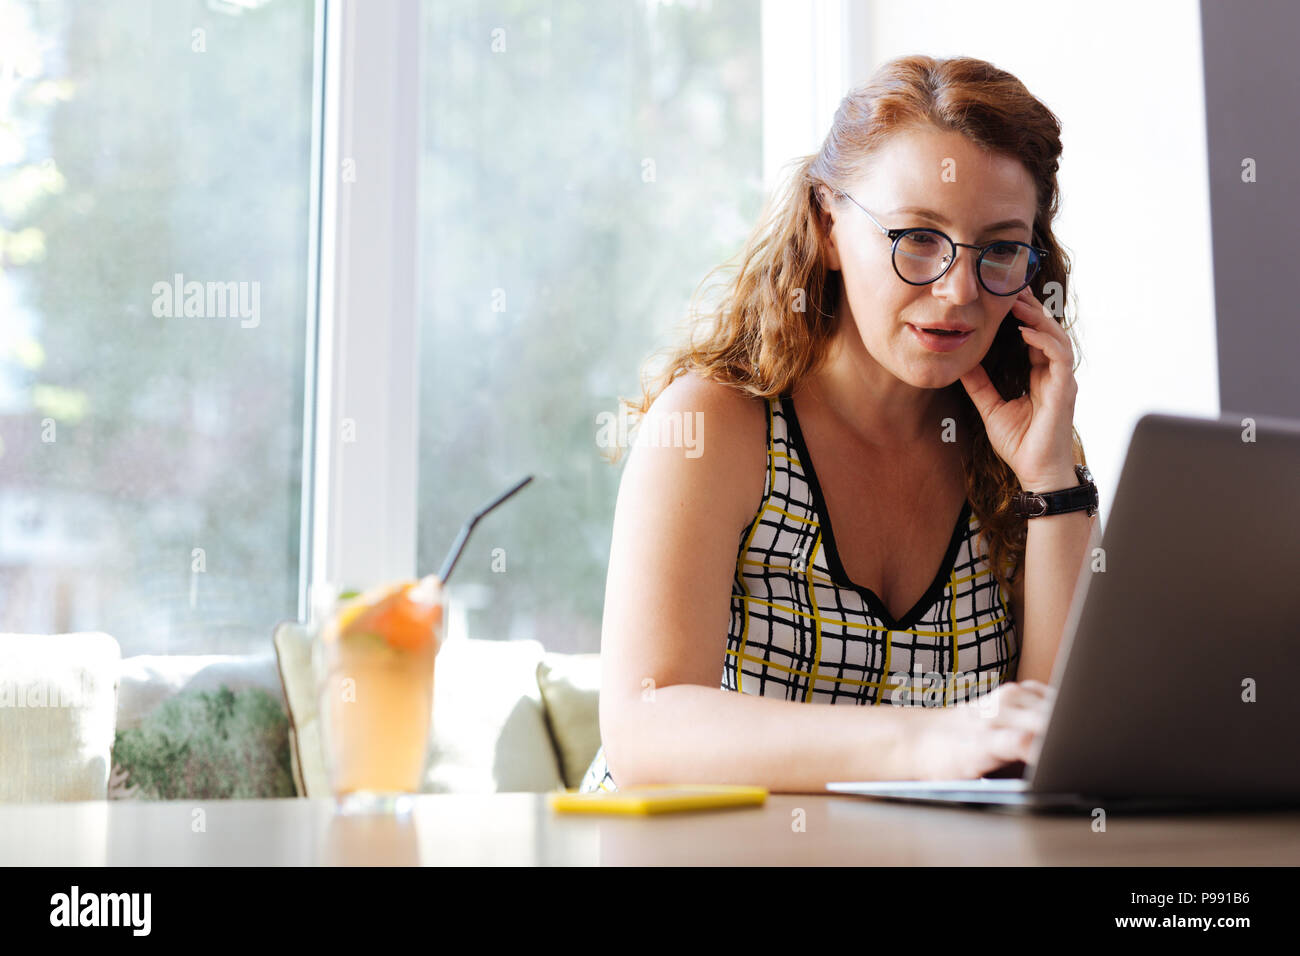 Freelance worker calling her husband while working from cafe - Stock Image